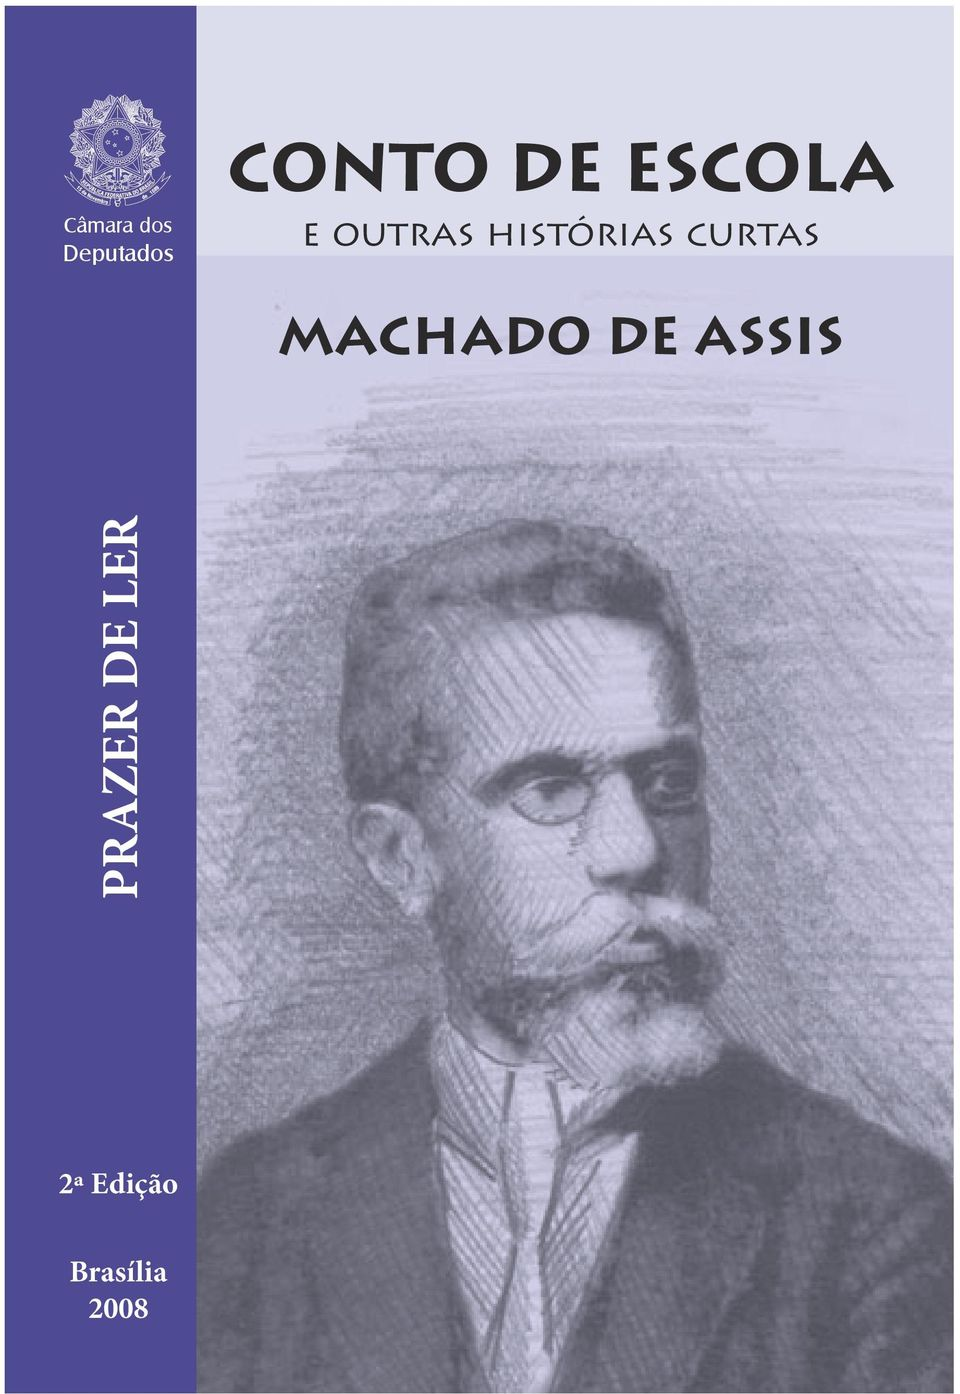 curtas MACHADO DE ASSIS